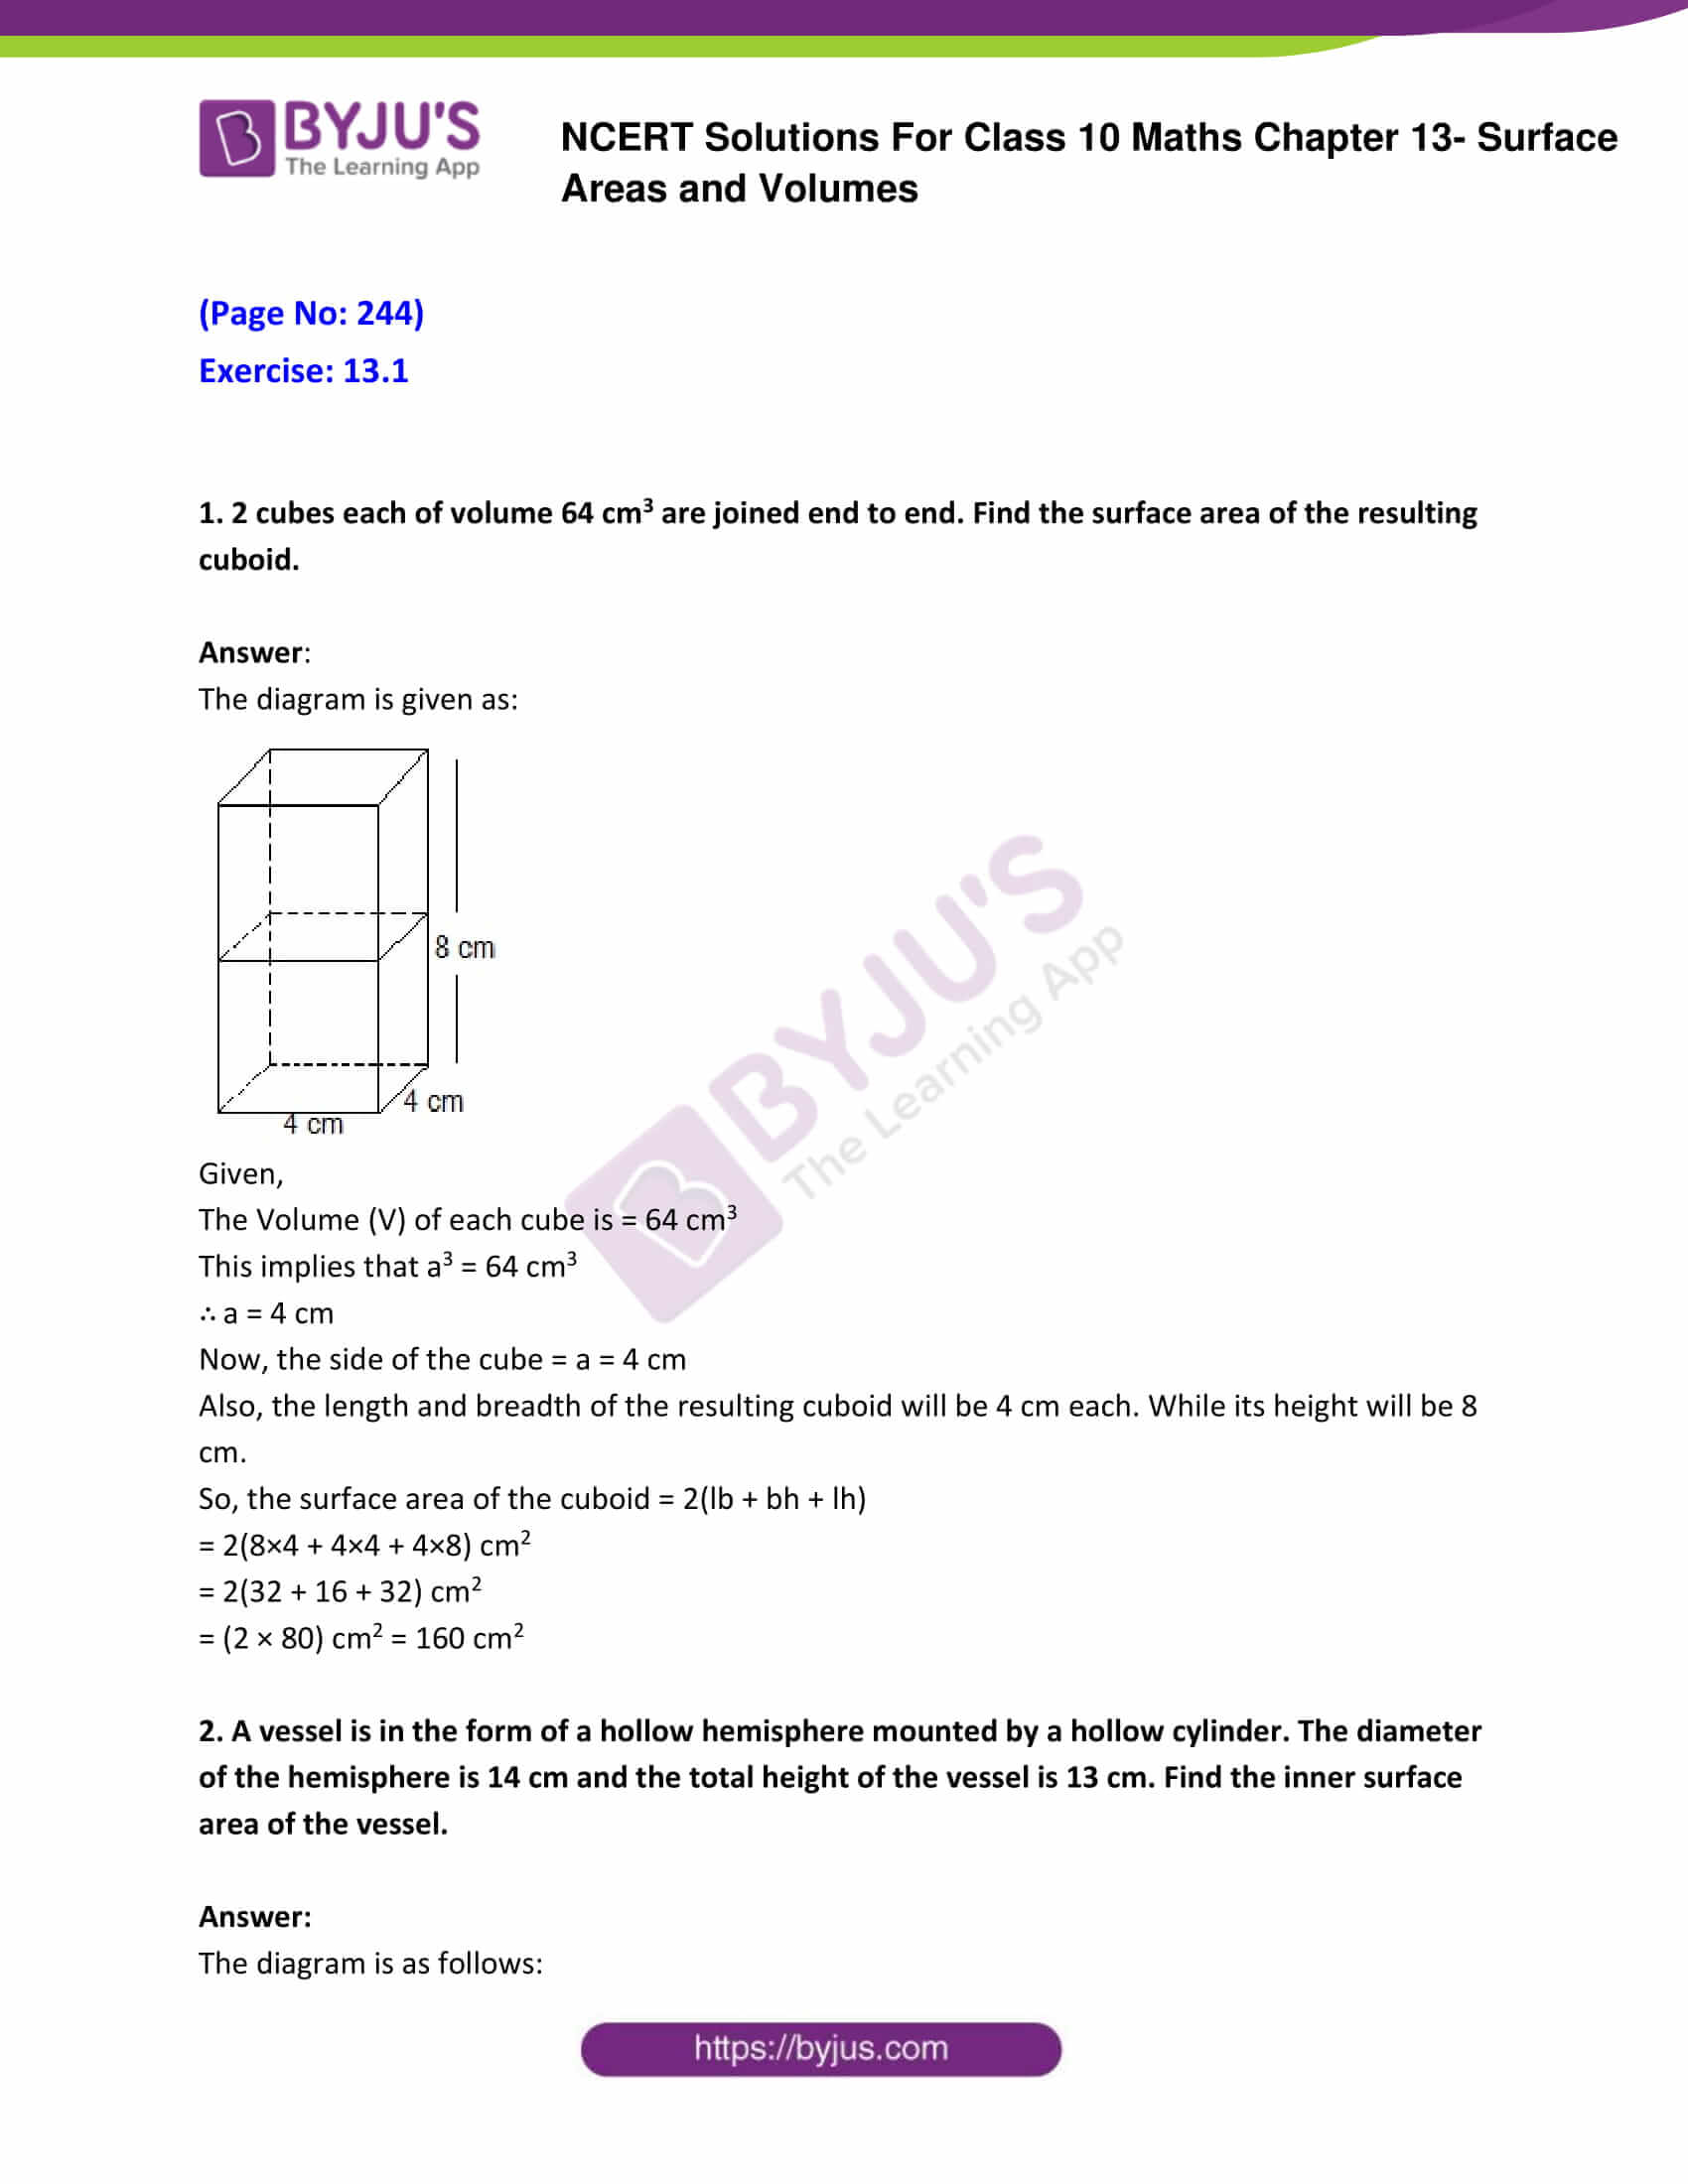 NCERT Solutions Class 10 Maths Chapter 13 Surface Areas and